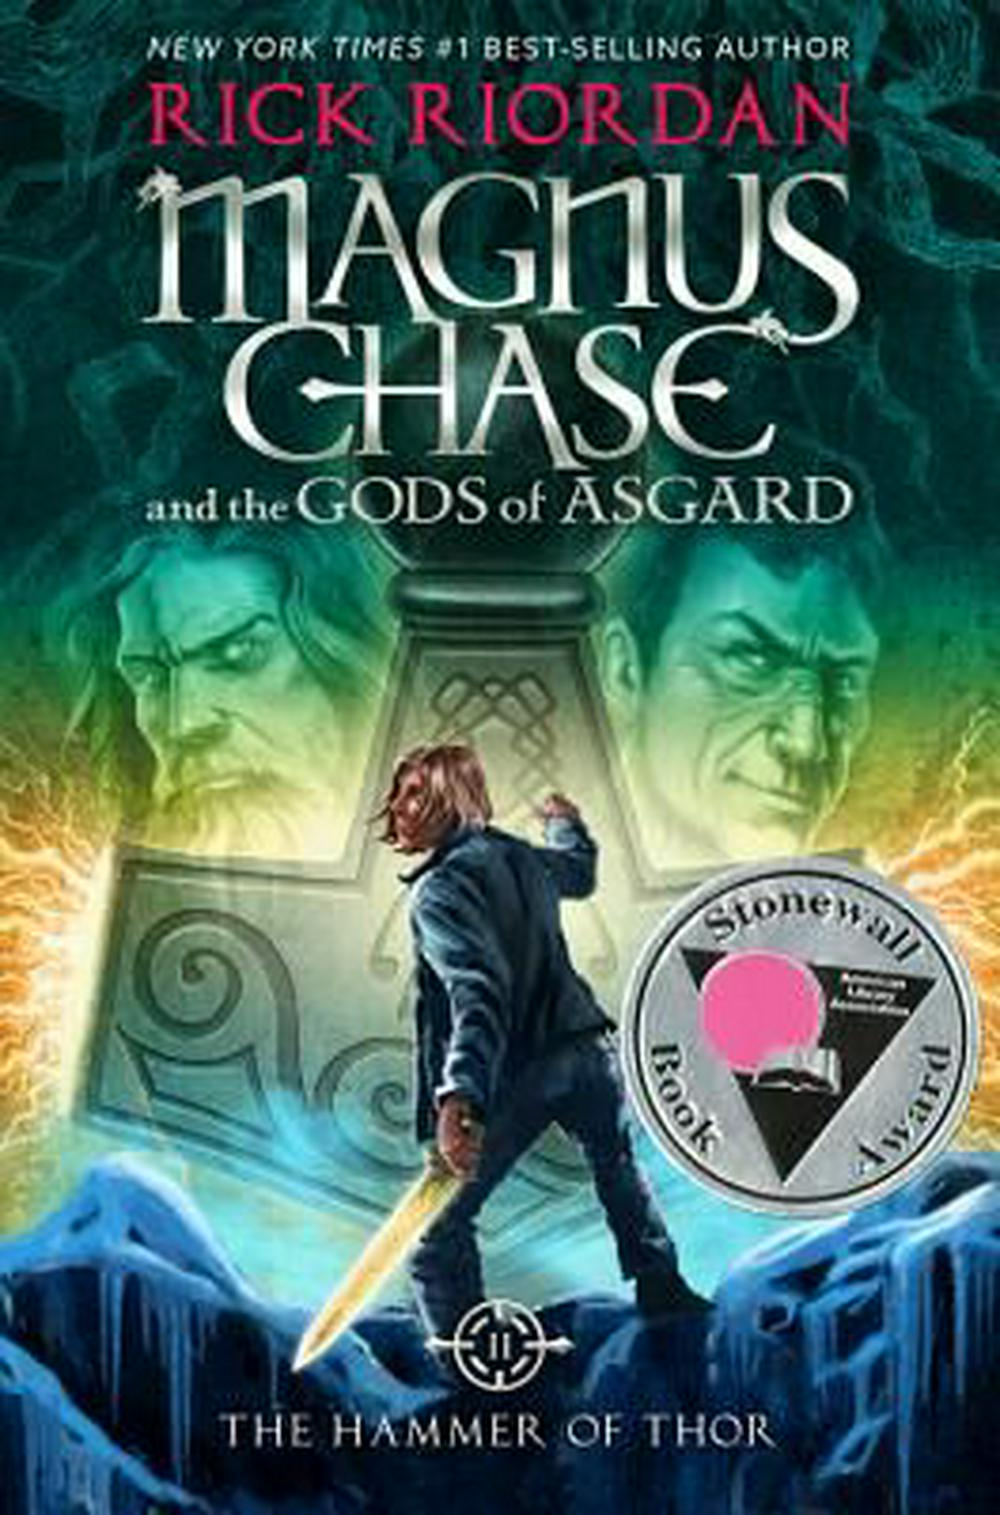 Magnus Chase and the Gods of Asgard, Book 2 the Hammer of ThorMagnus Chase and the Gods of Asgard